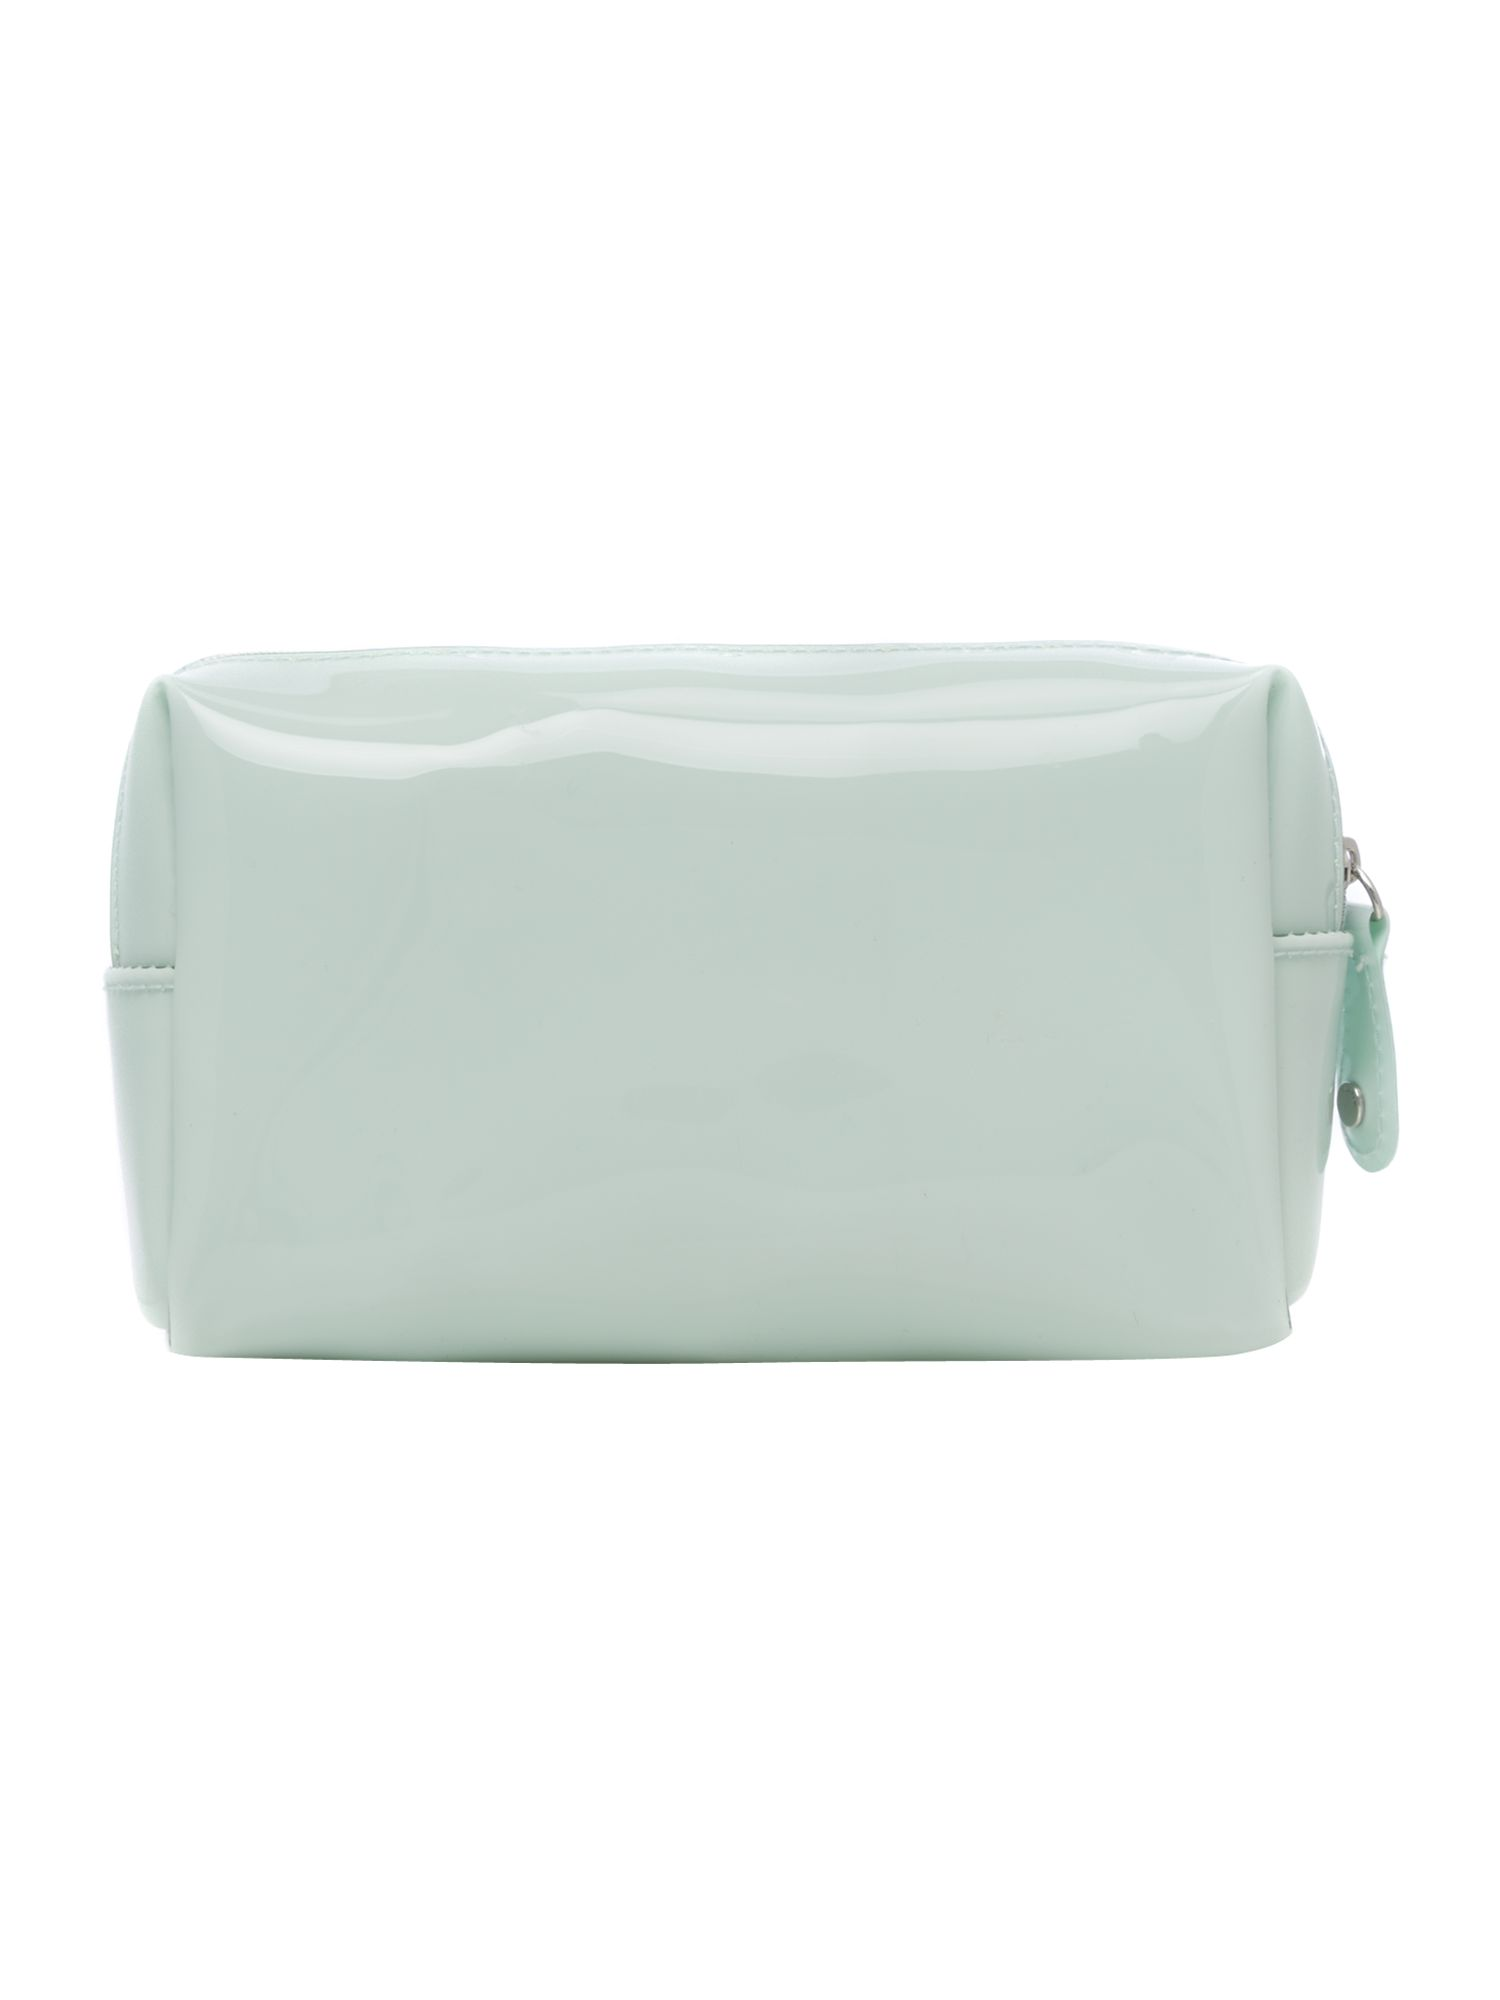 Small green cosmetics bag